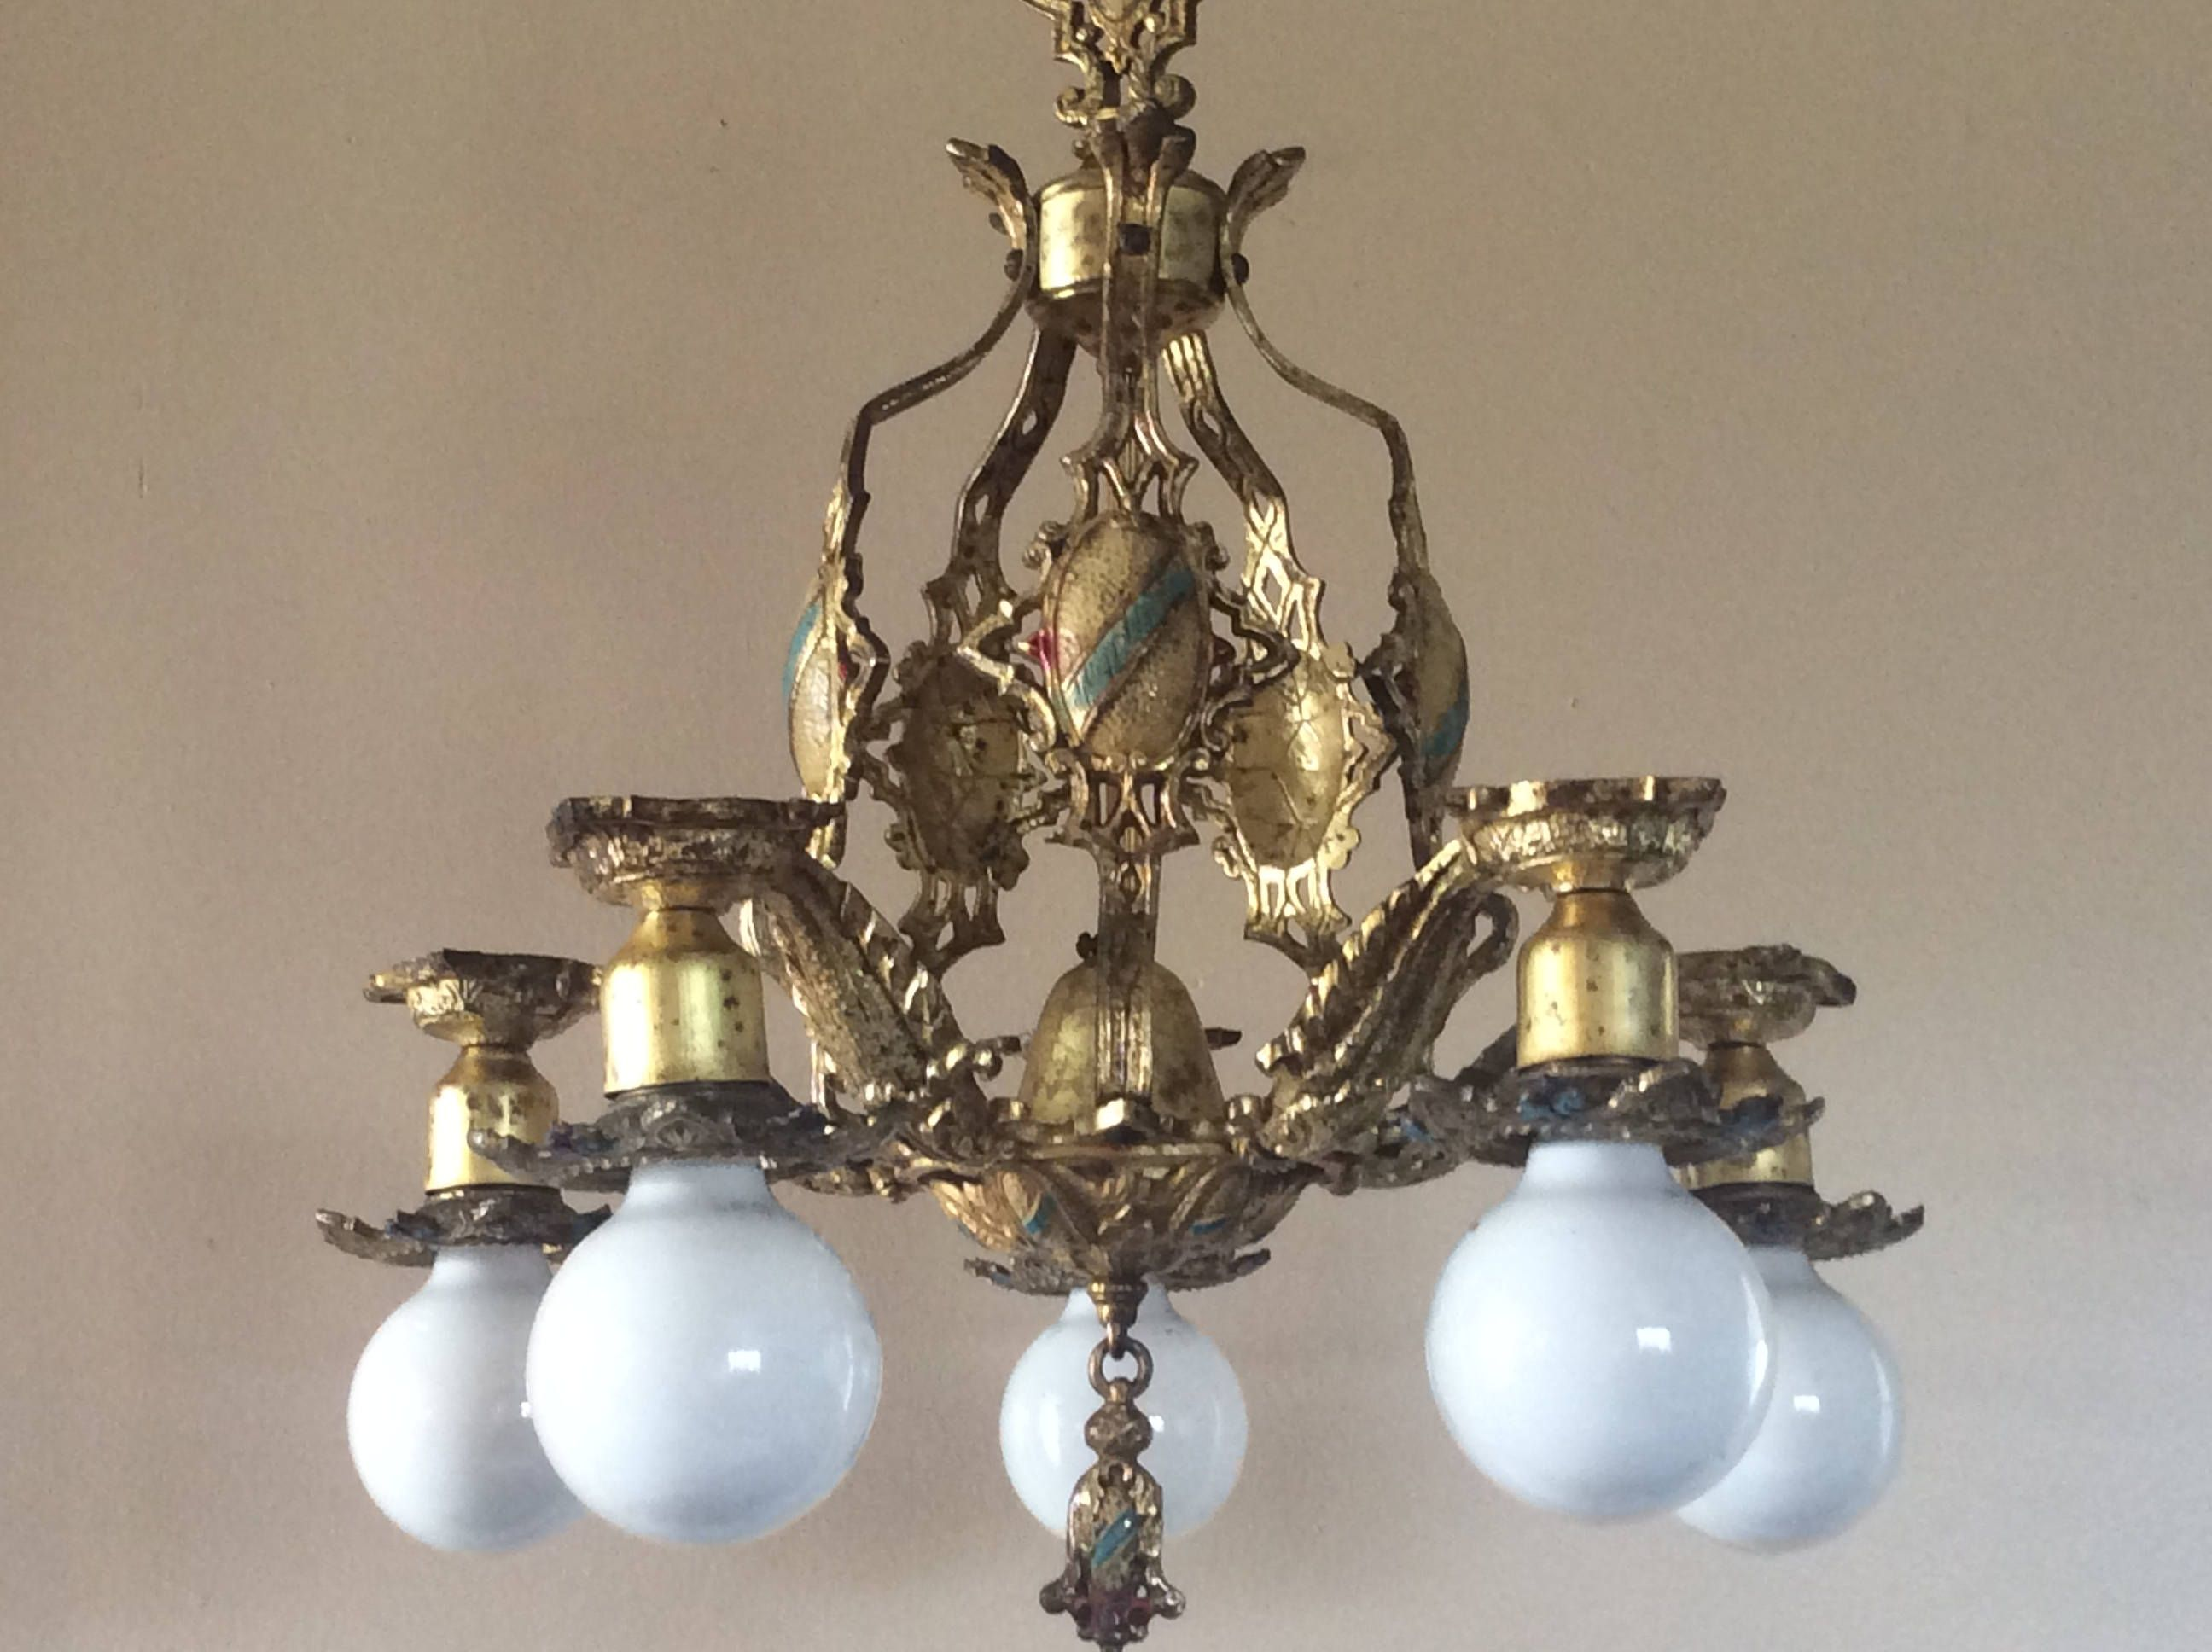 Antique art deco chandelier early 1900s cast brass polychrome 5 antique art deco chandelier early 1900s cast brass polychrome 5 light tudor original arubaitofo Gallery